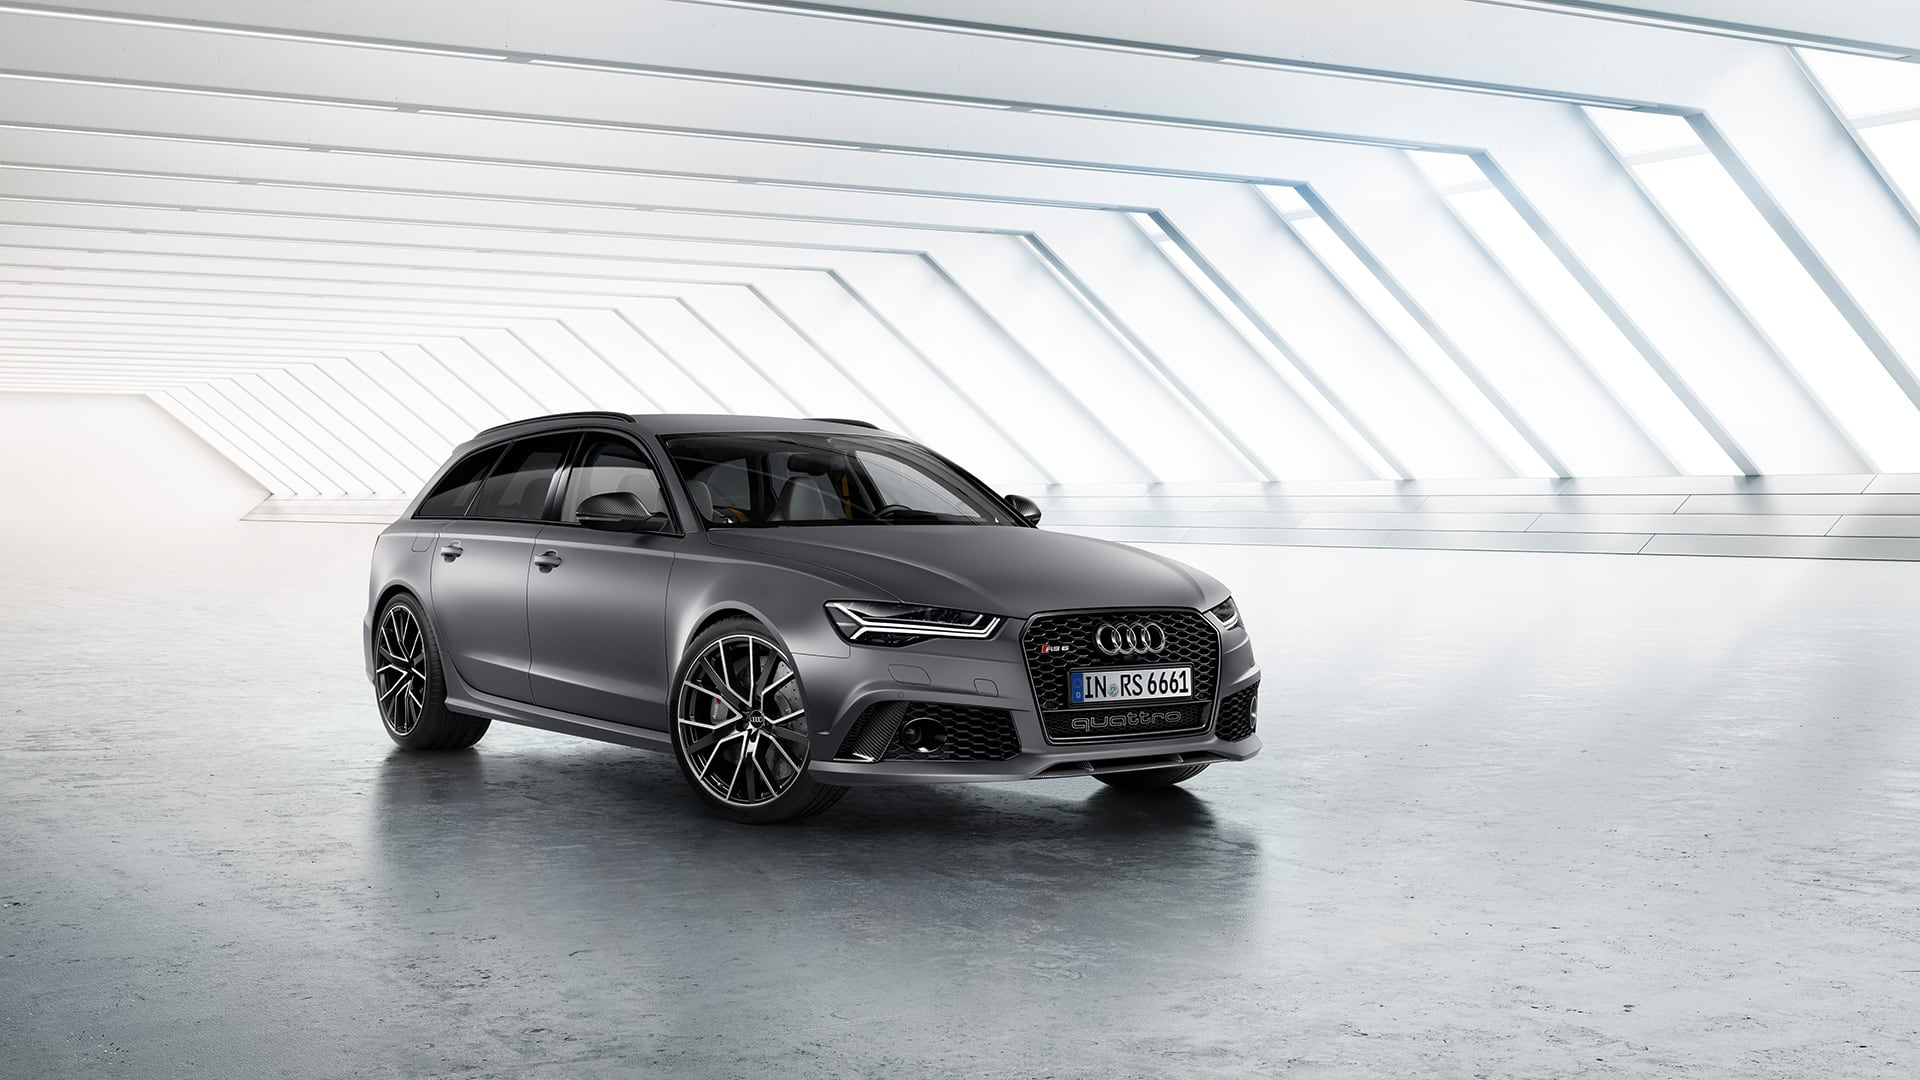 audi rs 6 avant everyday supercar audi australia audi australia official website luxury. Black Bedroom Furniture Sets. Home Design Ideas